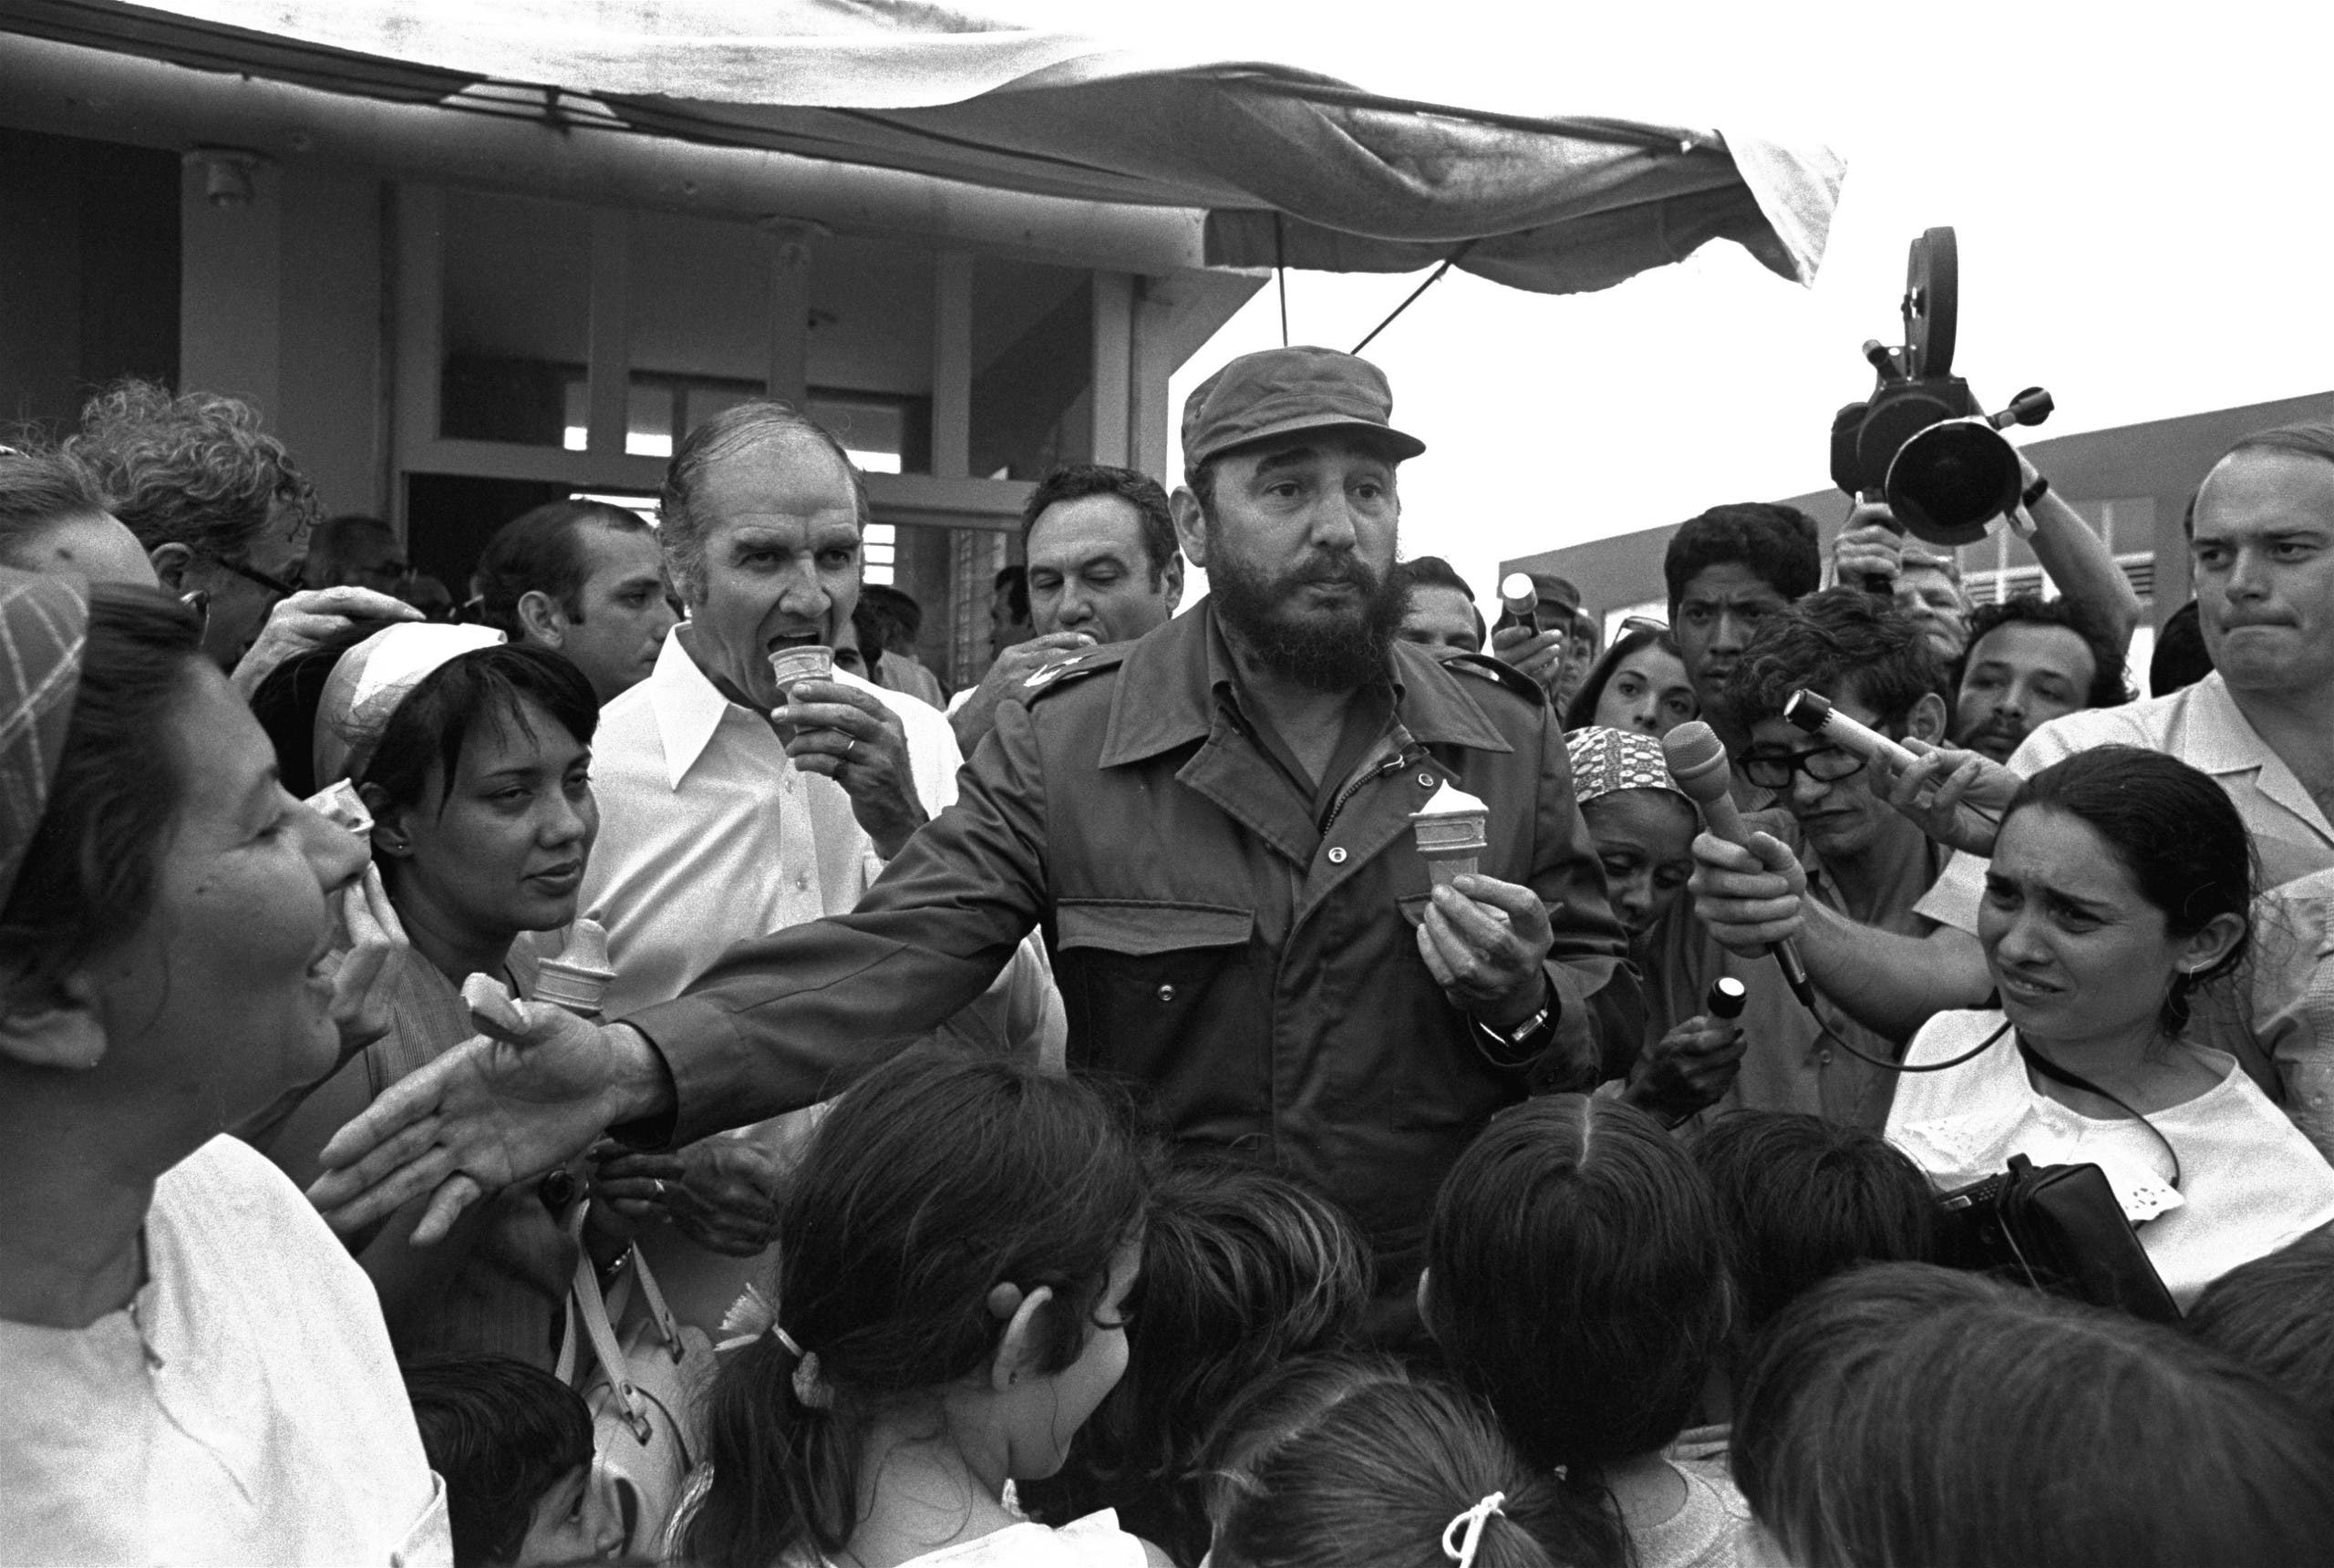 Cuban Prime Minister Fidel Castro treats visiting Senator George McGovern, D-SD, to ice cream Wednesday, May 8, 1975, in Jibacoa, Cuba, a milk-producing town near Havana. Sen. McGovern and Castro visited family homes and met local residents. (AP)